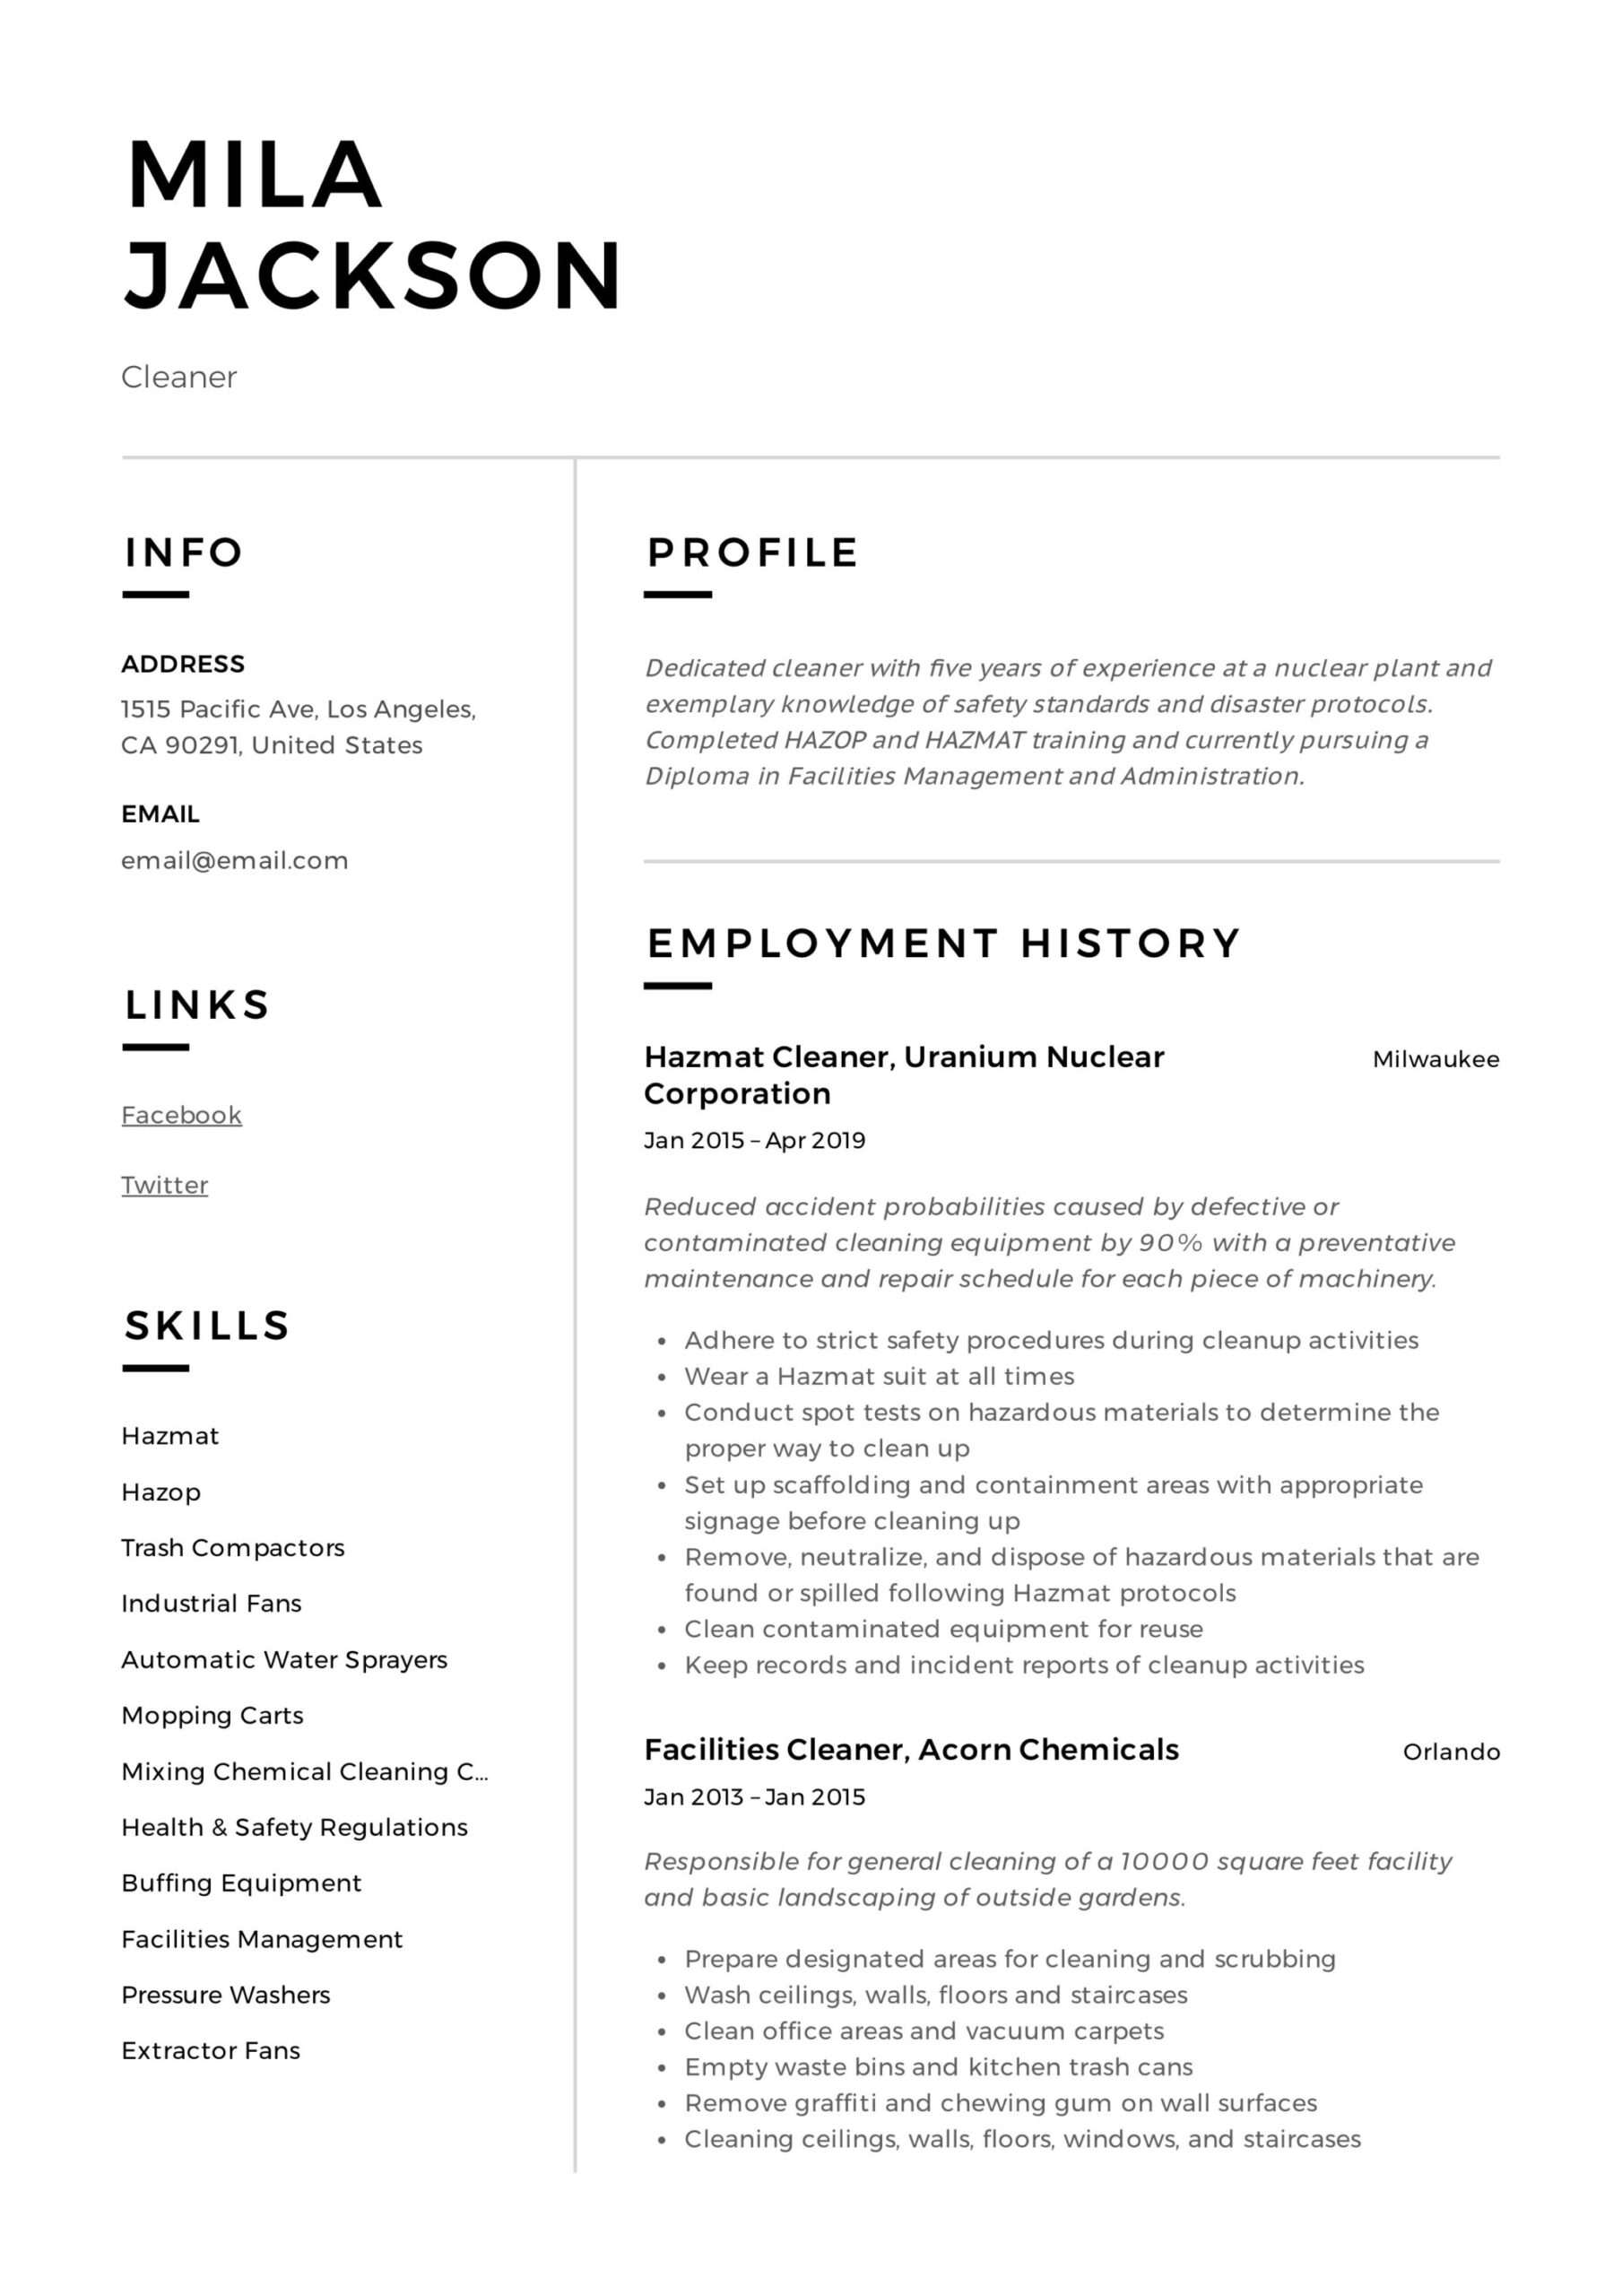 cleaner resume writing guide templates pdf self employed house mila assassin selenium for Resume Self Employed House Cleaner Resume